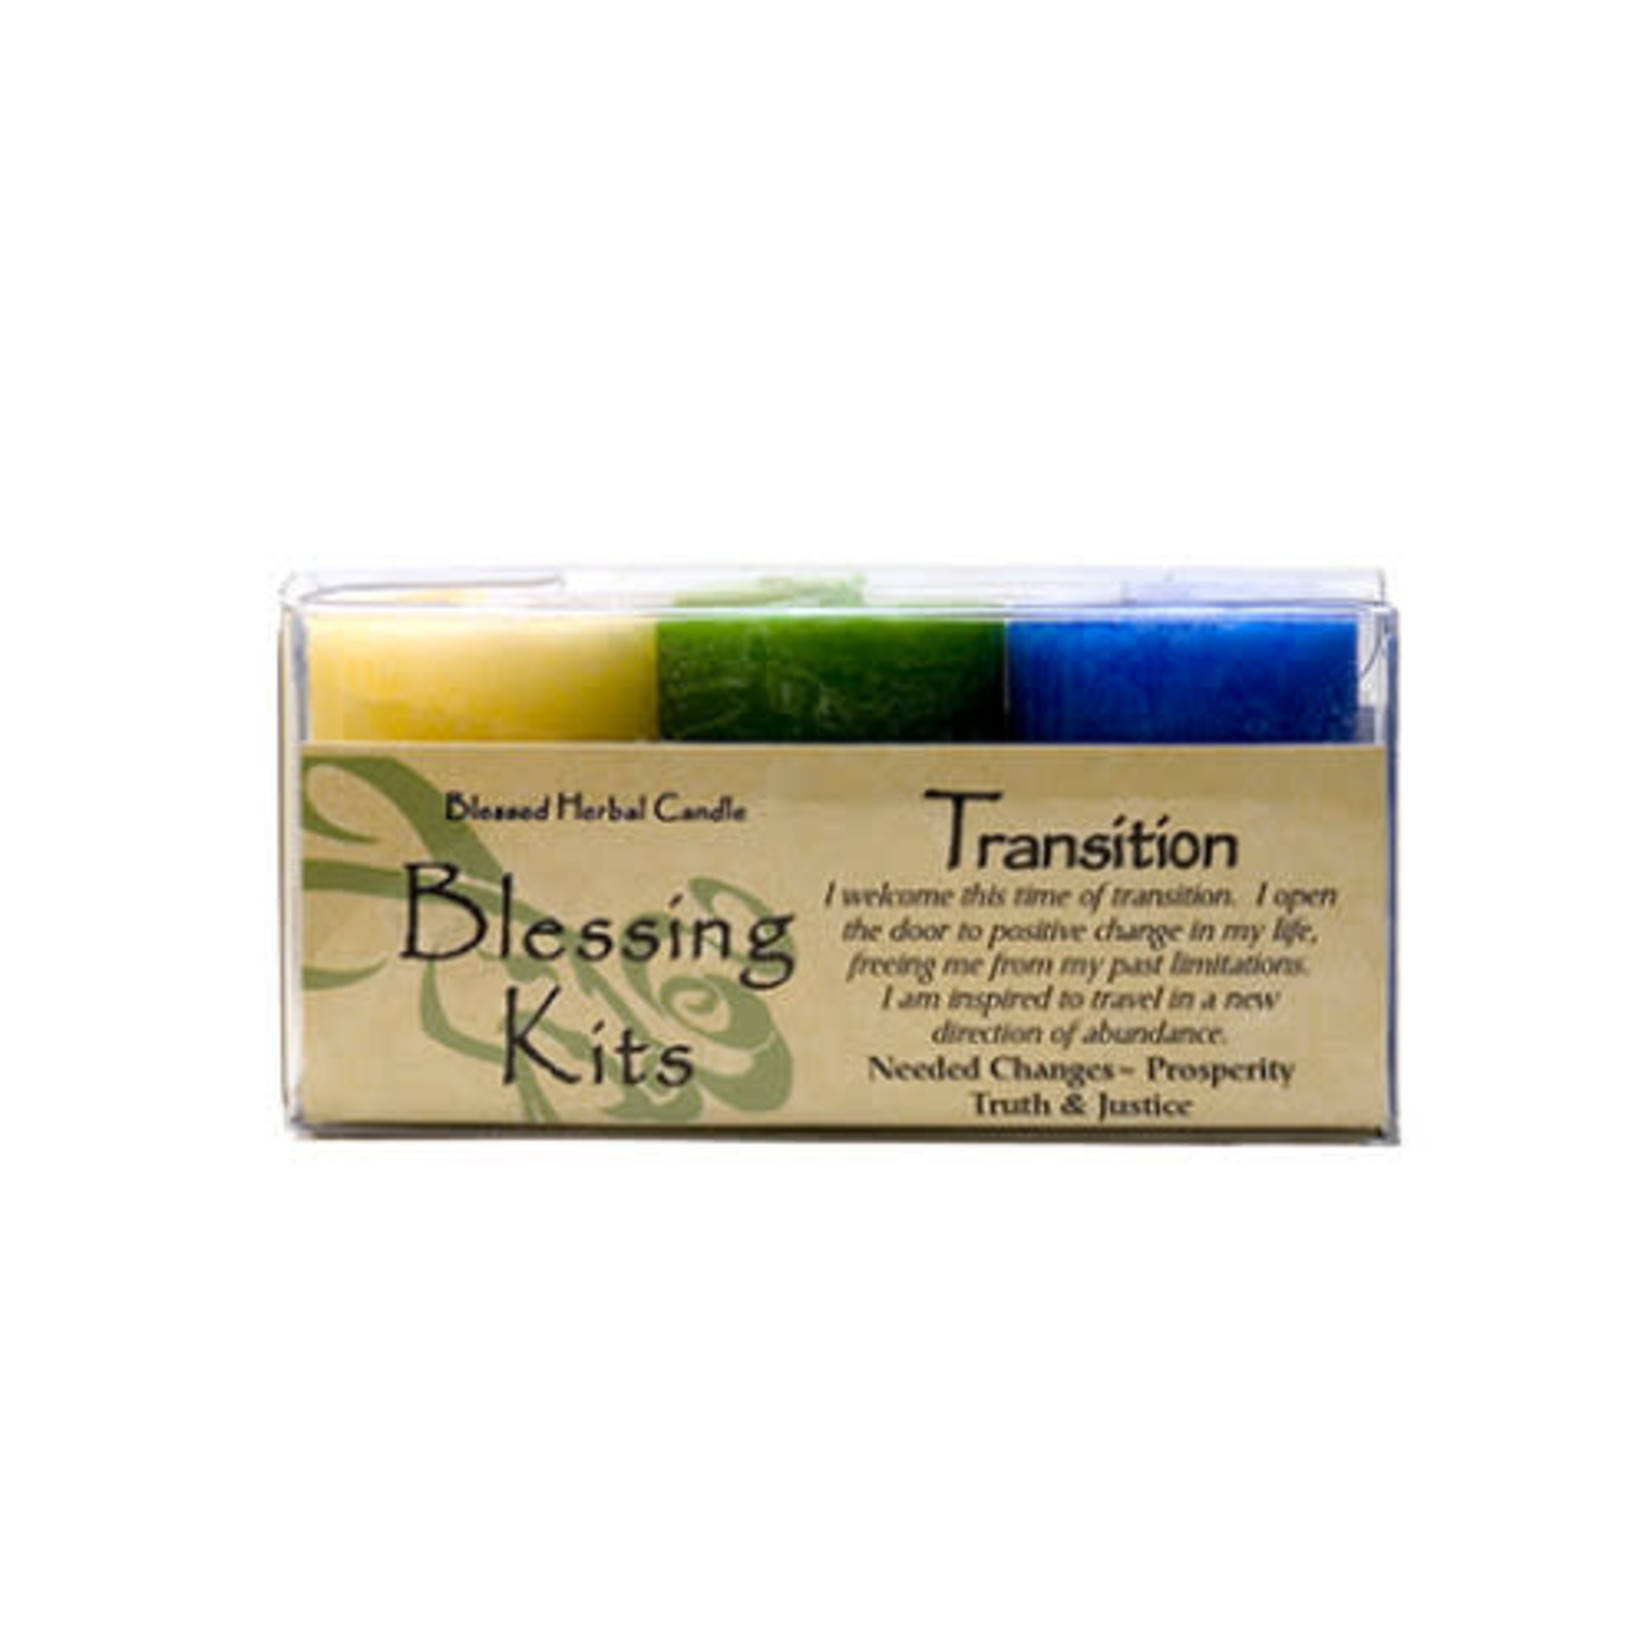 Blessed Kit Herbal Transition Candle Kit